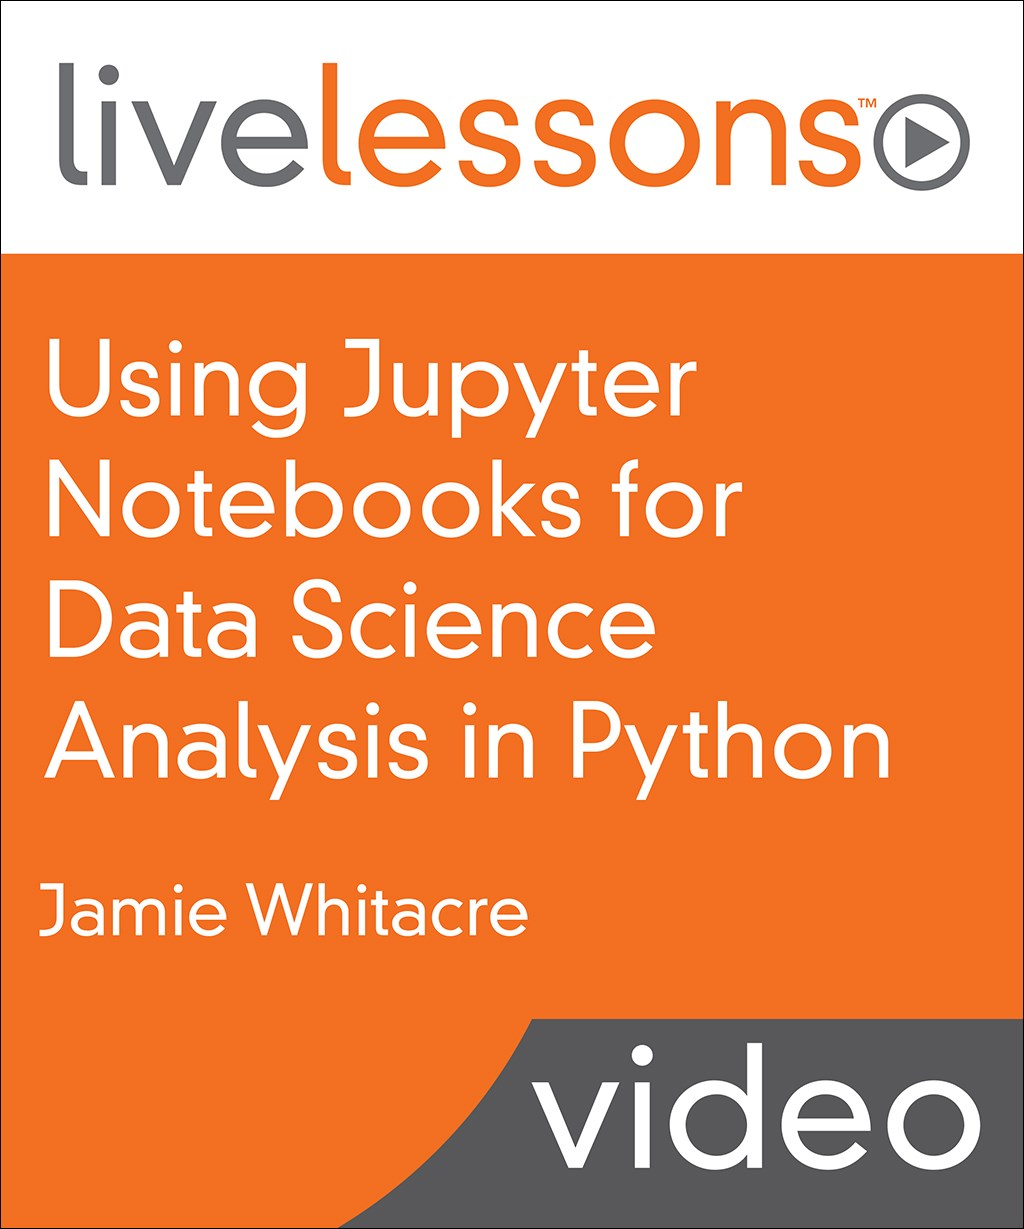 Using Jupyter Notebooks for Data Science Analysis in Python